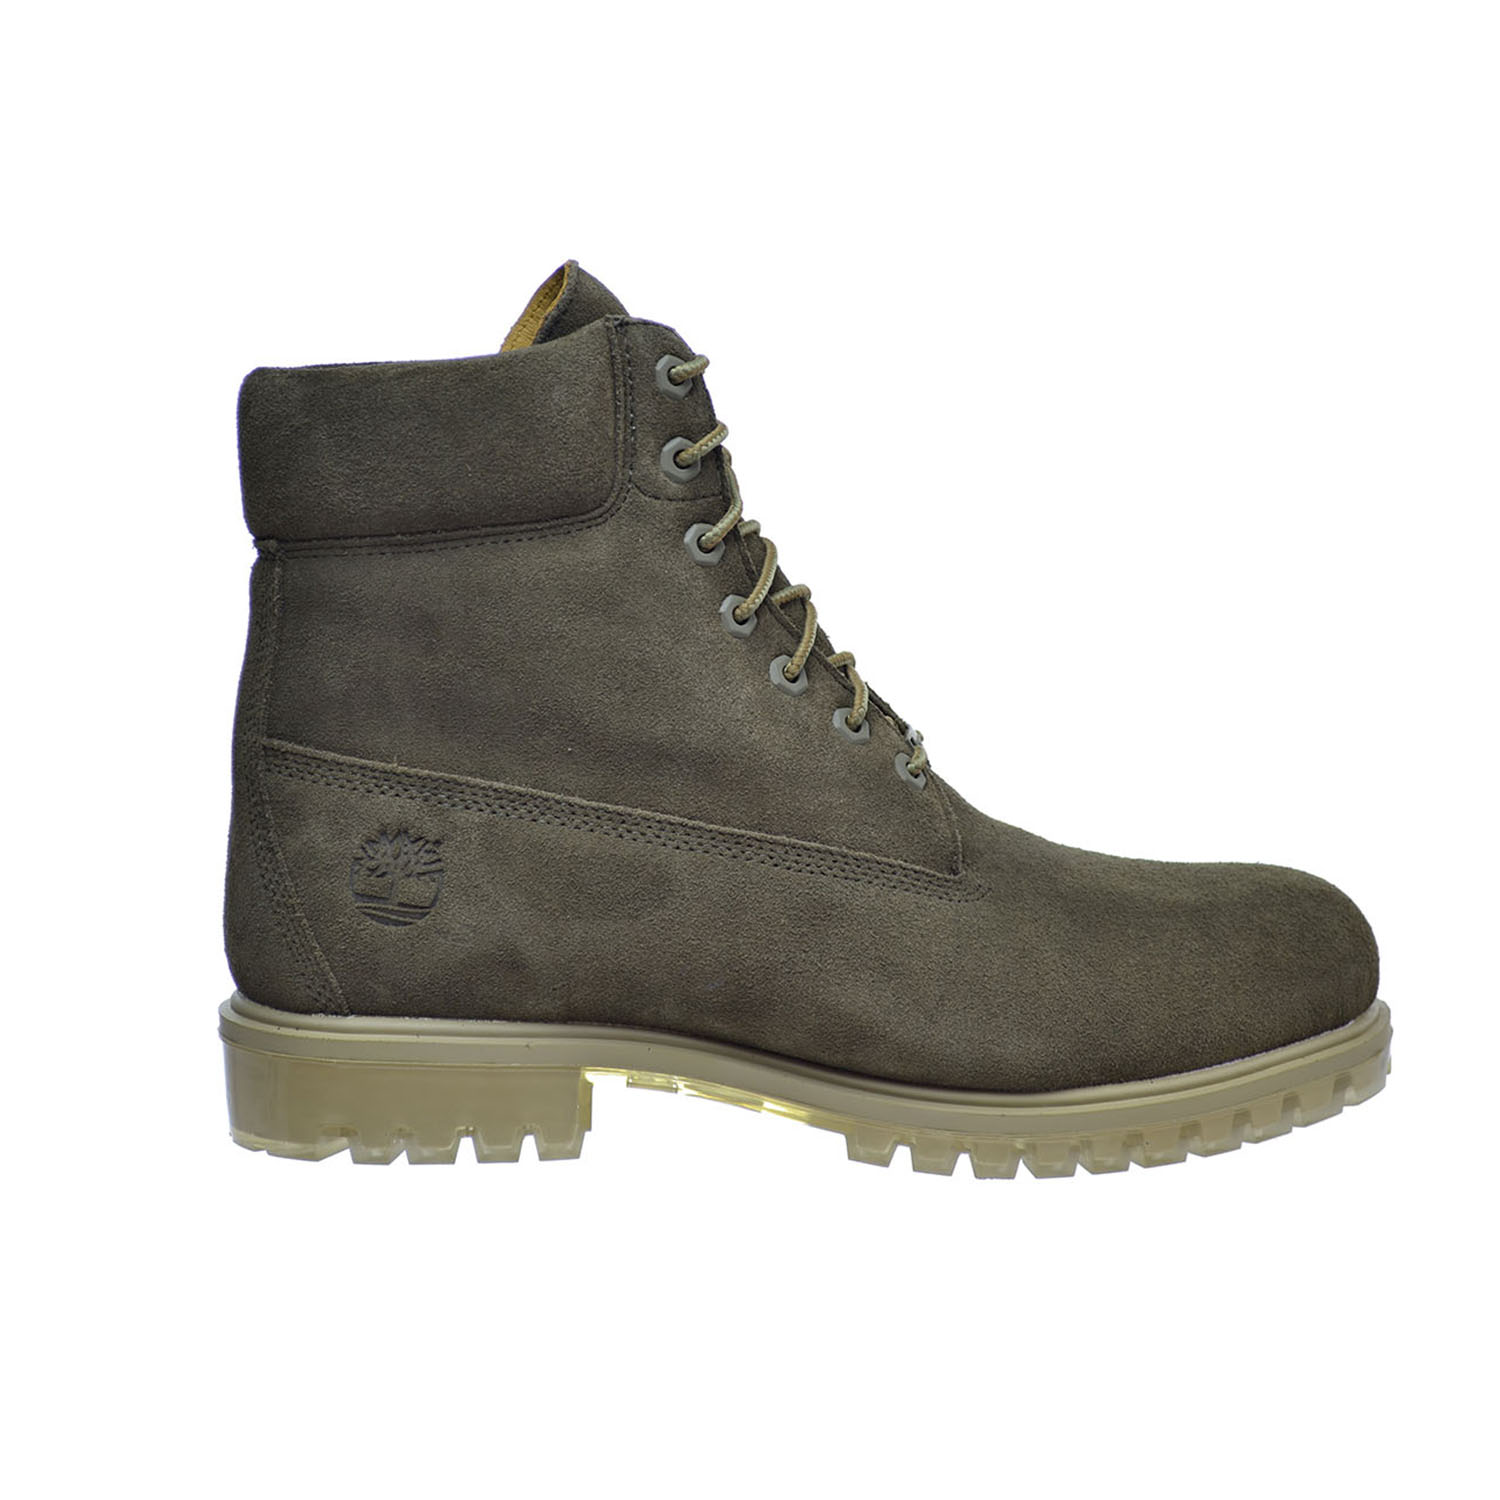 Timberland 6 Inch Men's Premium Suede Boots Green tb0a18pz by Timberland